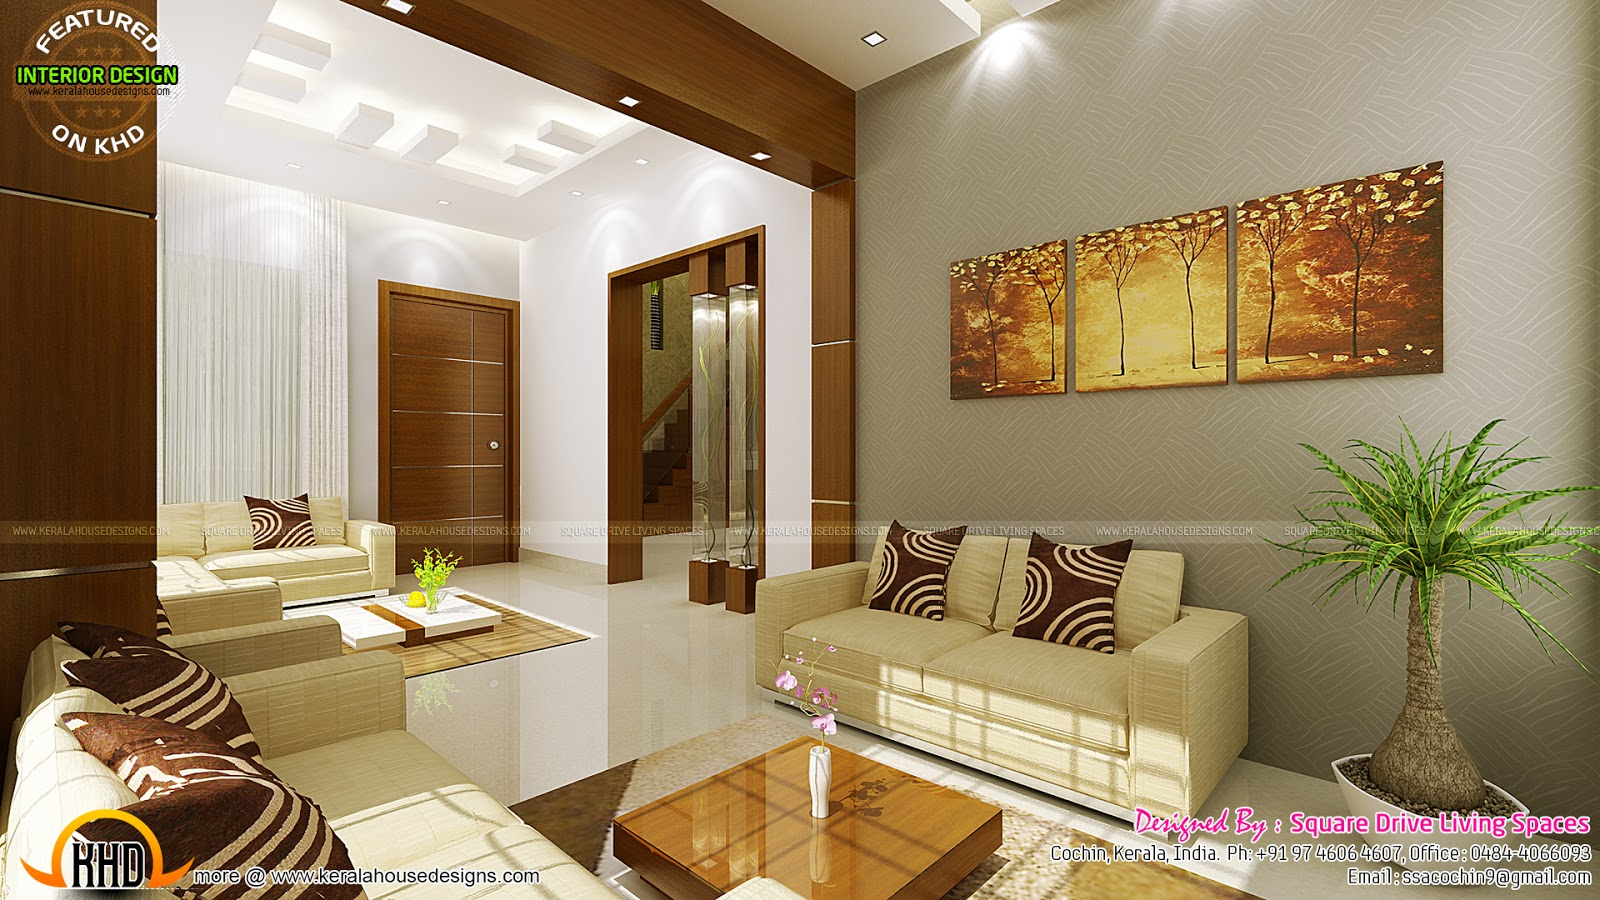 Perfect living room ideas drawing room interior design for Interior designs in kerala